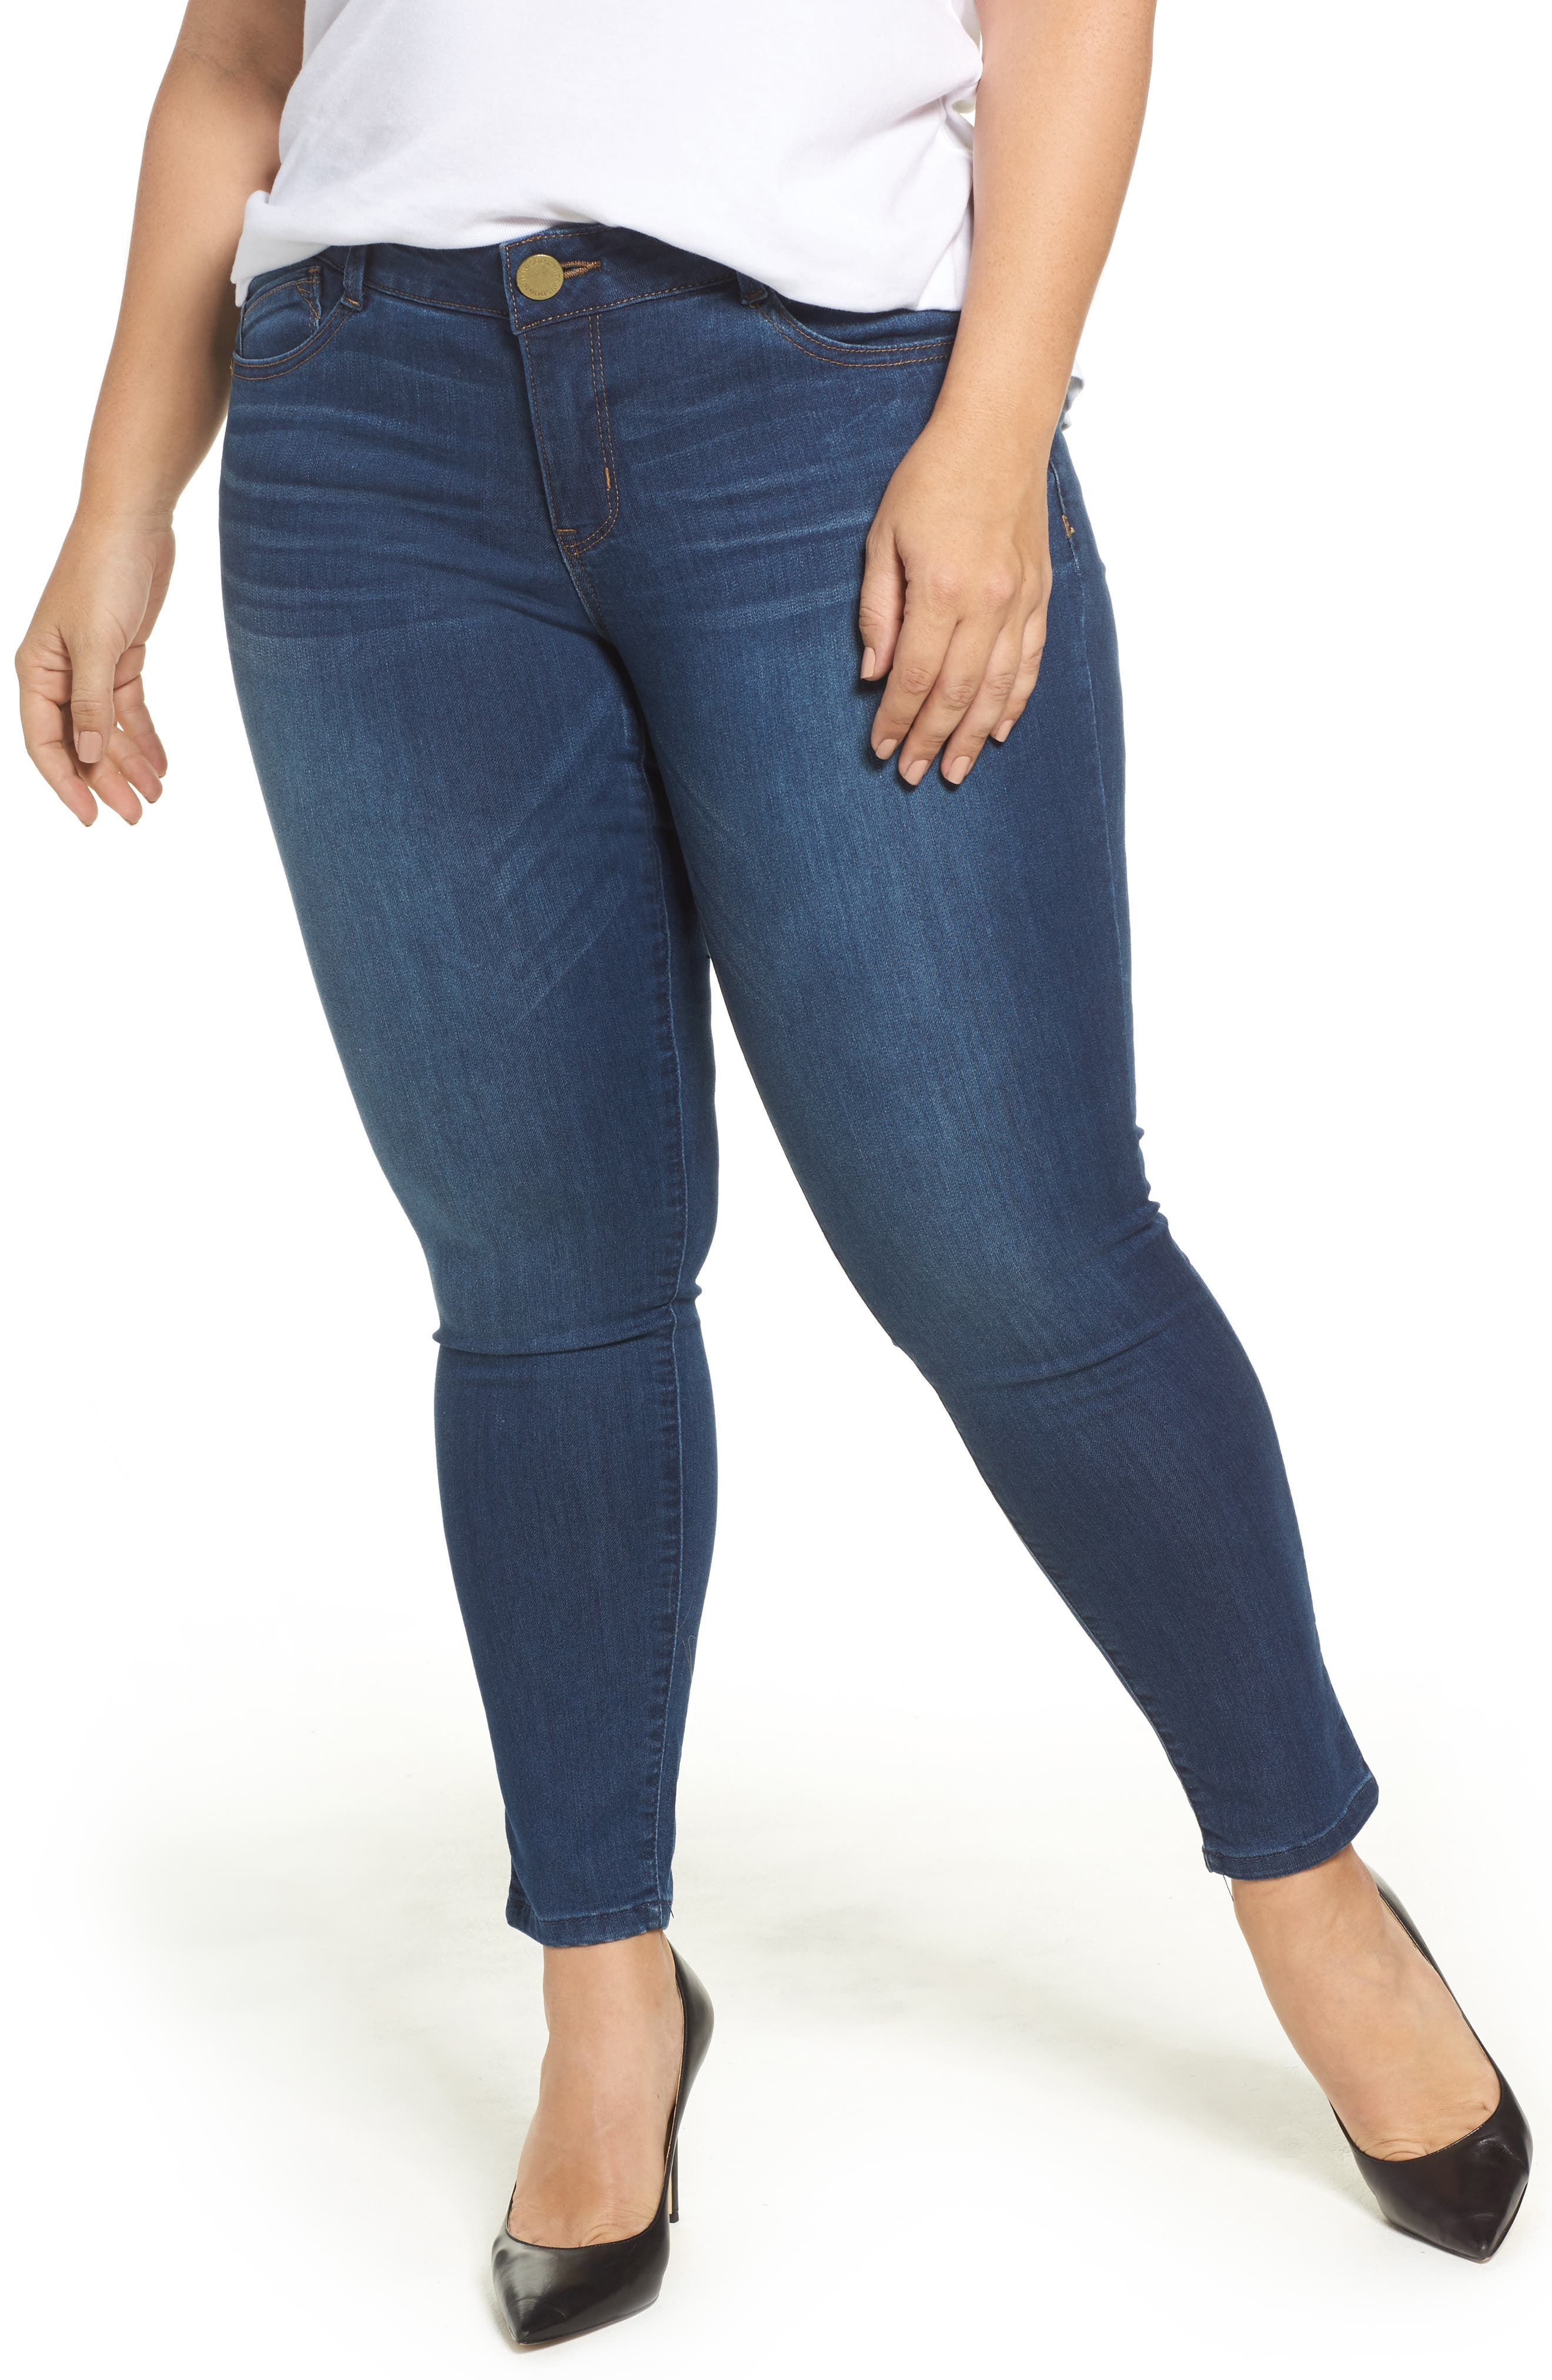 Ab-solution Skinny Jeans,                         Main,                         color, Blue